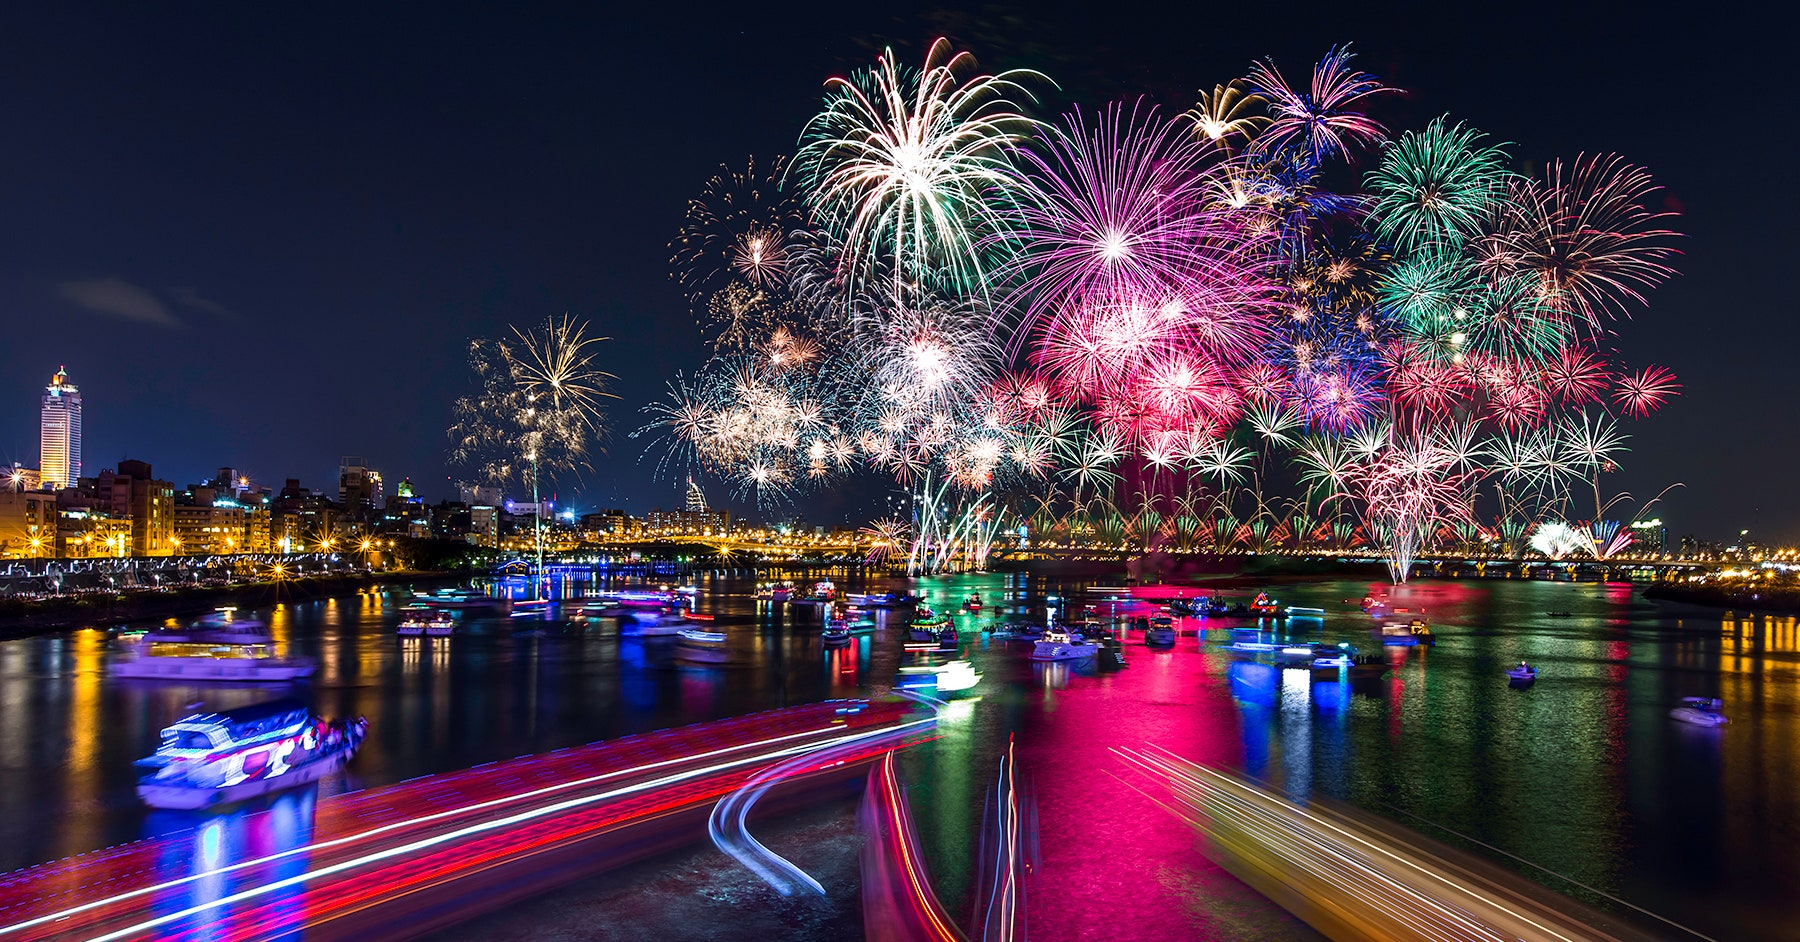 How to Take Photos of Fireworks With Your Phone